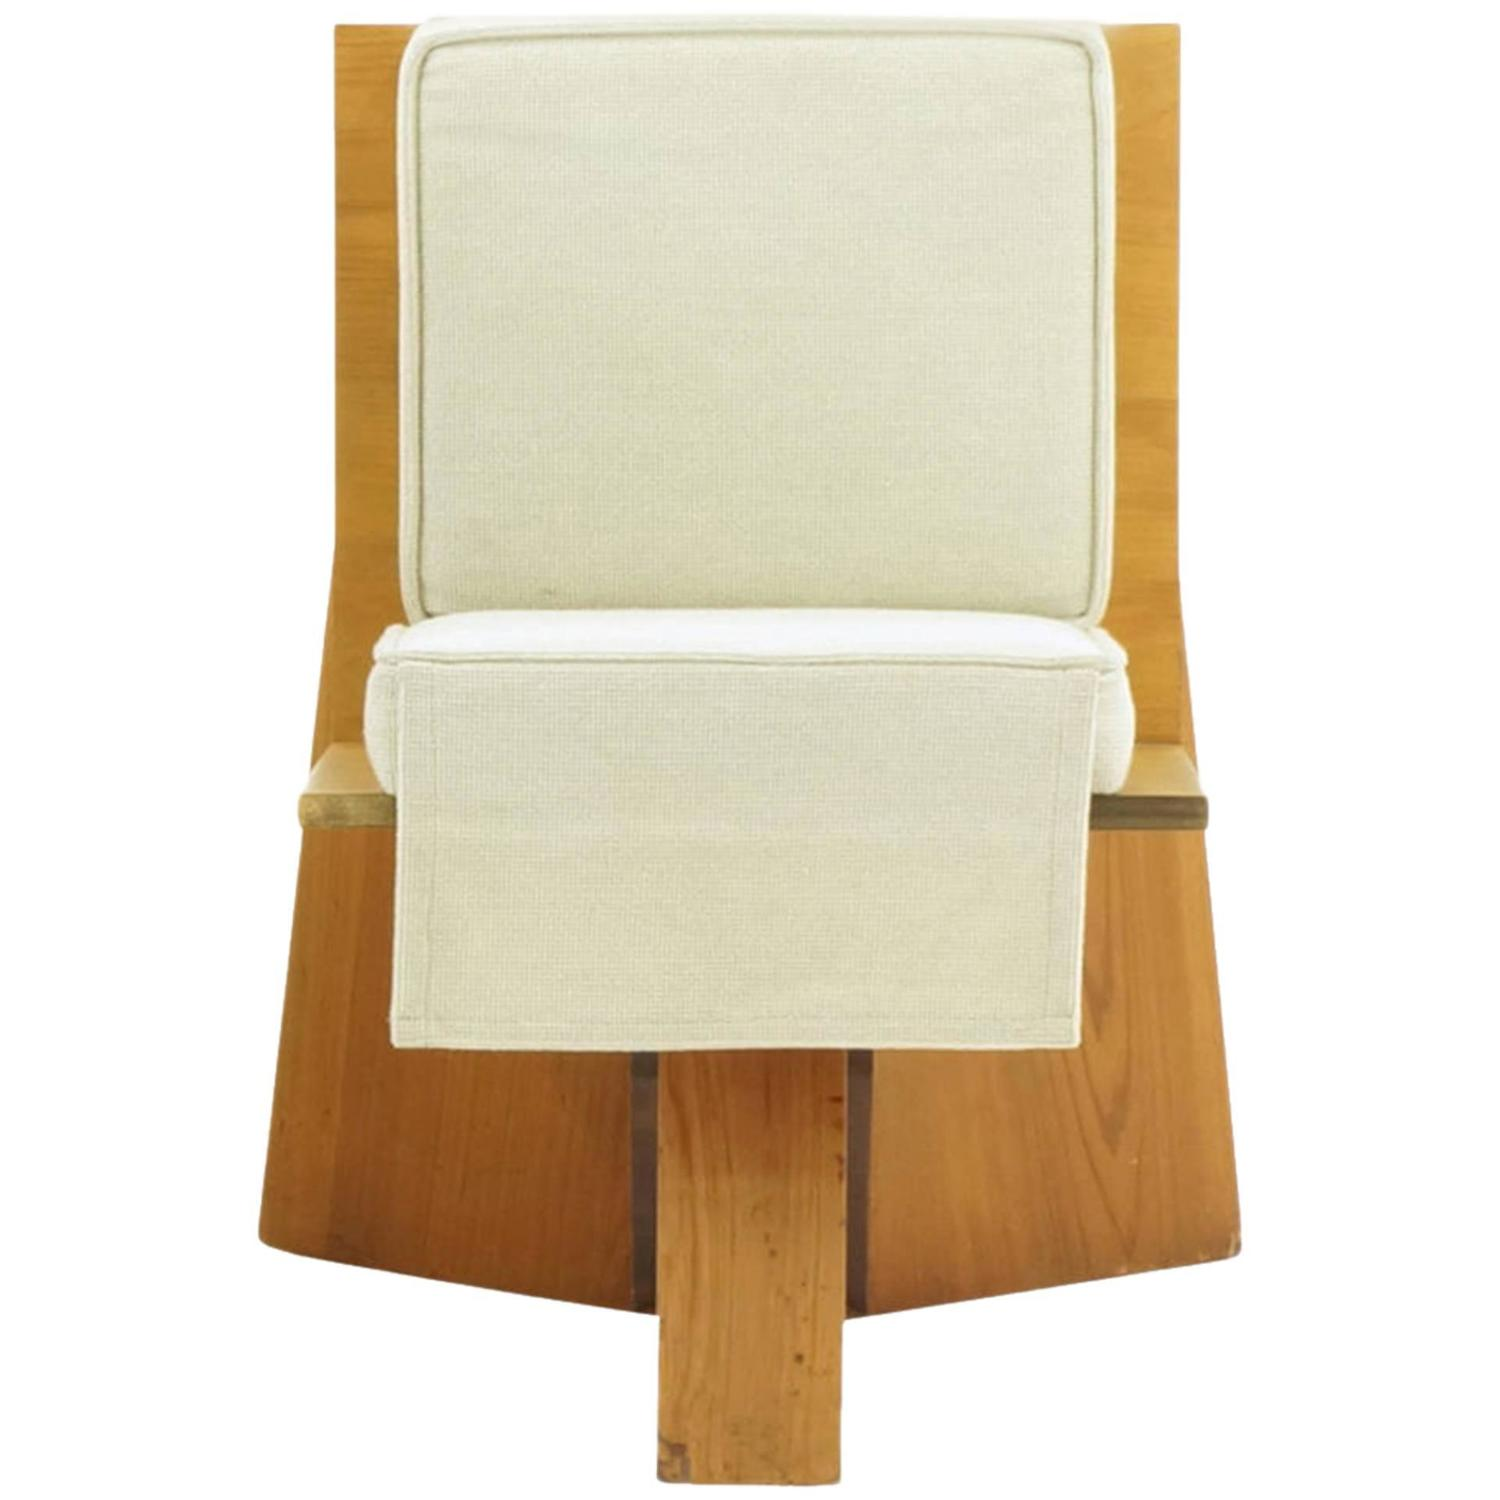 frank lloyd wright chairs office chair reupholstery from the sondern house kansas